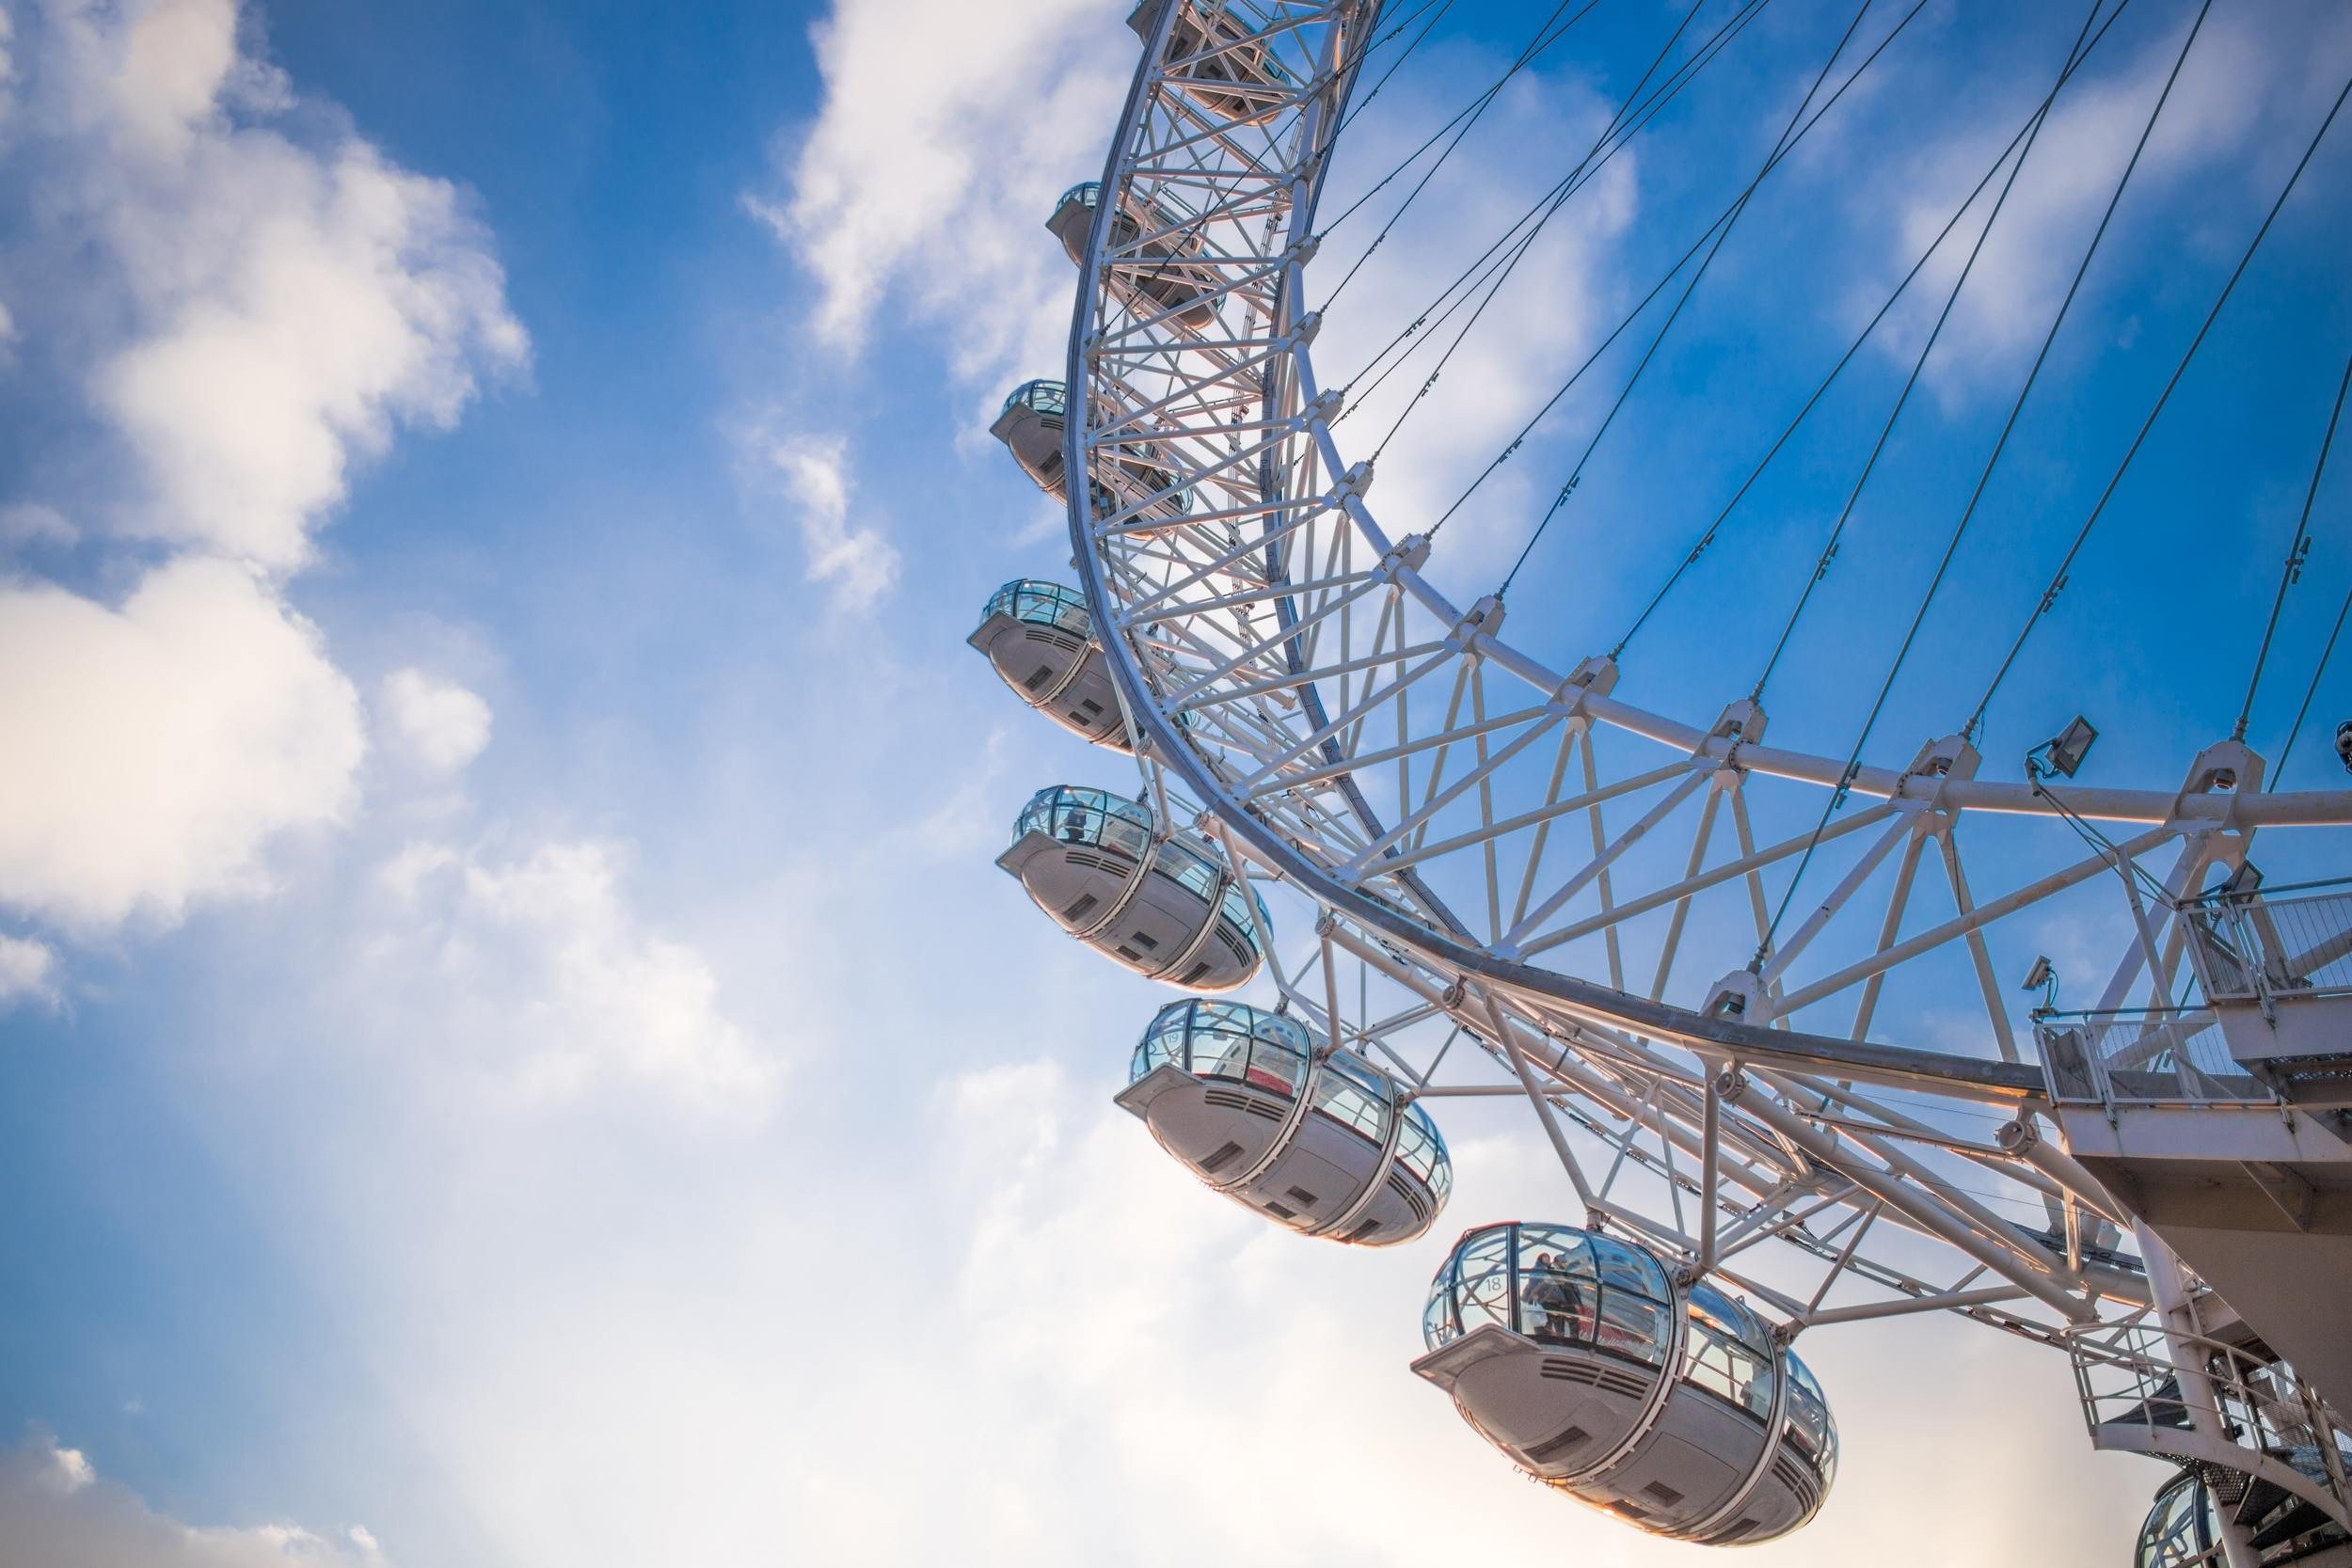 London Eye - 2 Day Itinerary